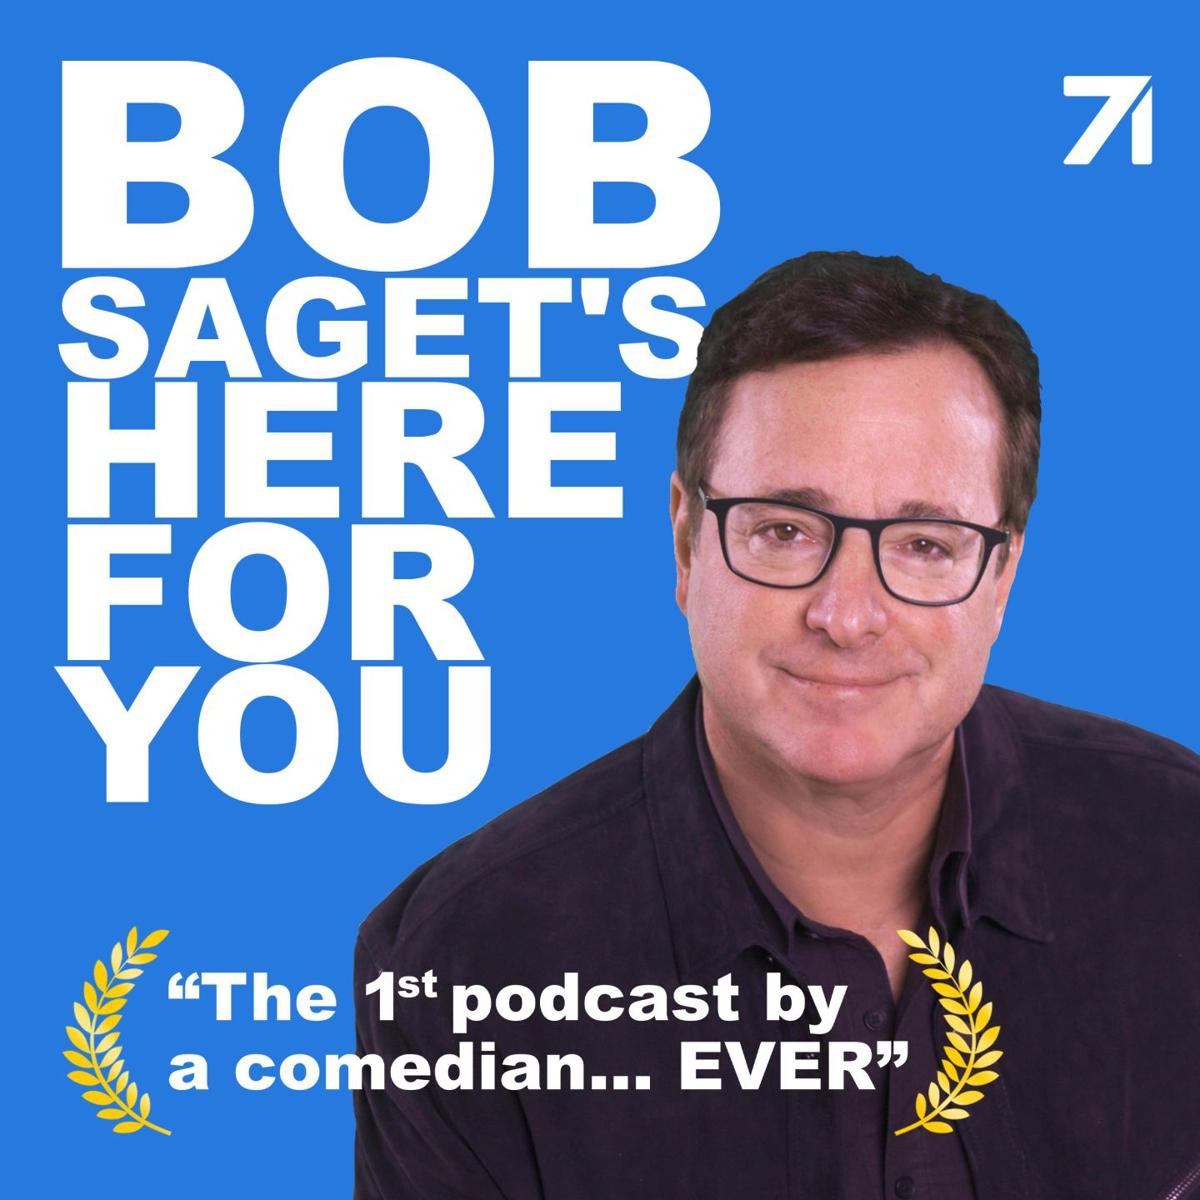 Comic invites you to call, says 'Bob Saget's Here For You'